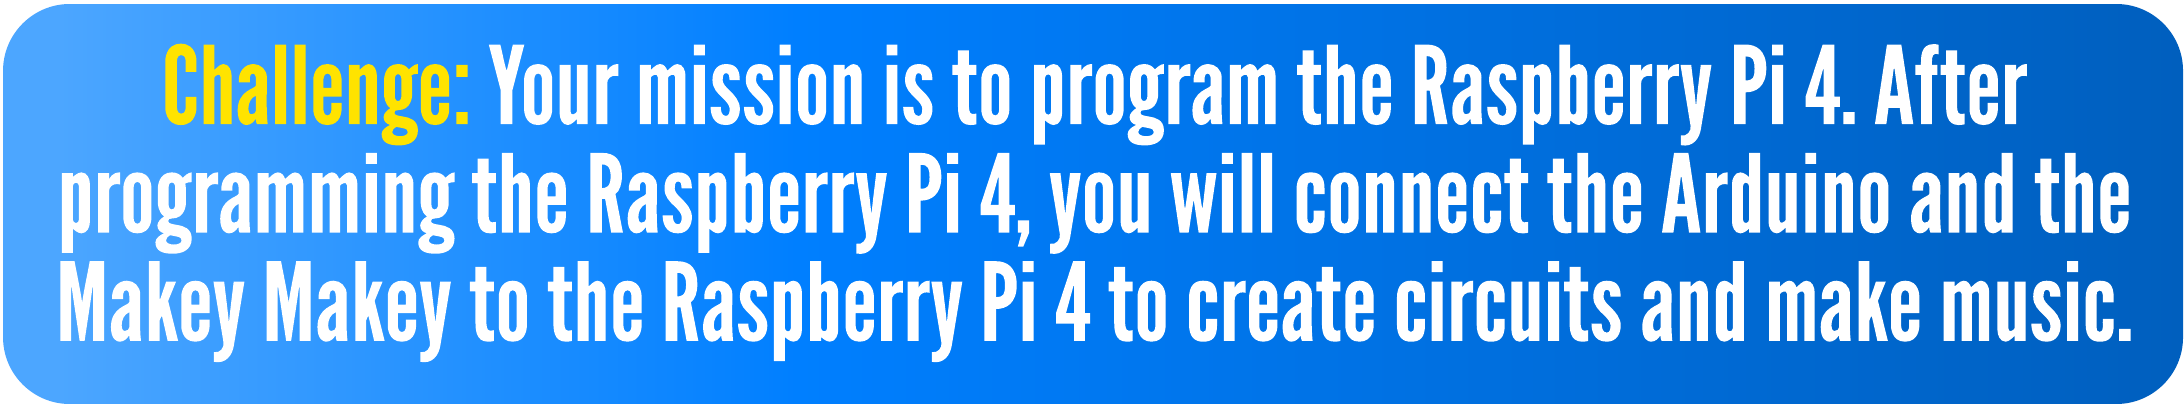 Challenge: Your mission is to program the Raspberry Pi 4. After programming the Raspberry Pi 4, you will connect the Arduino and the Makey Makey to the Raspberry Pi 4 to create circuits and make music.